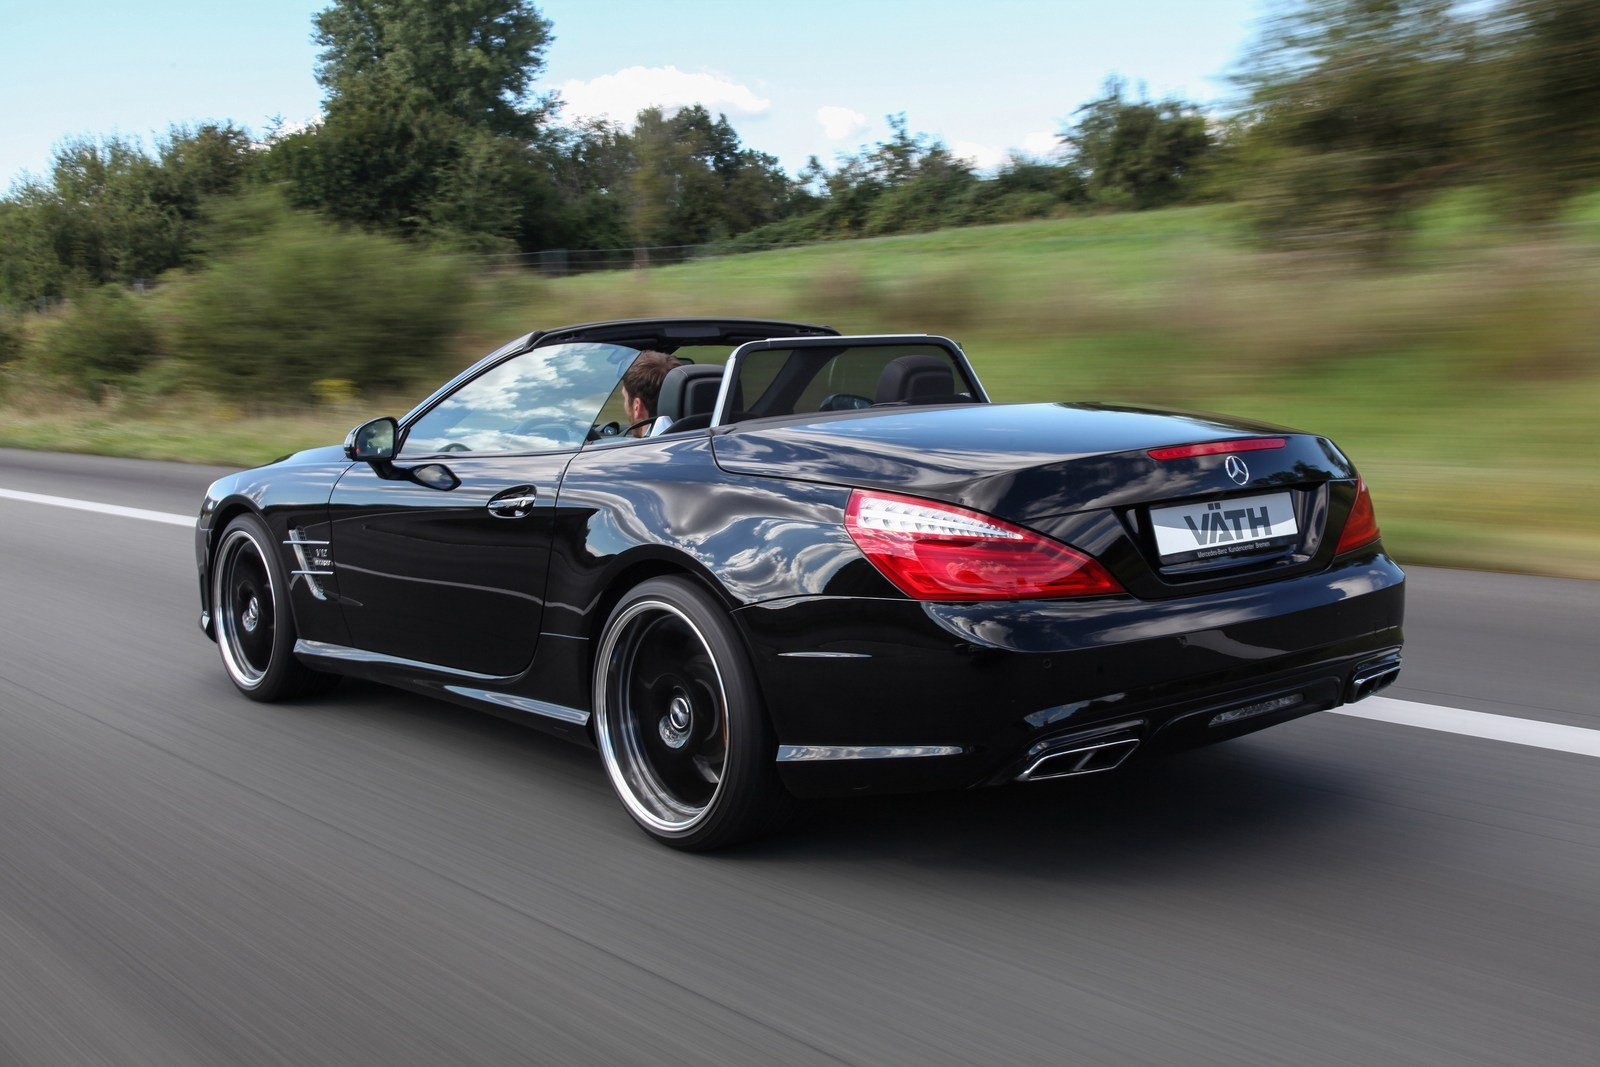 2016 mercedes amg sl 65 by vath picture 696876 car review top speed. Black Bedroom Furniture Sets. Home Design Ideas